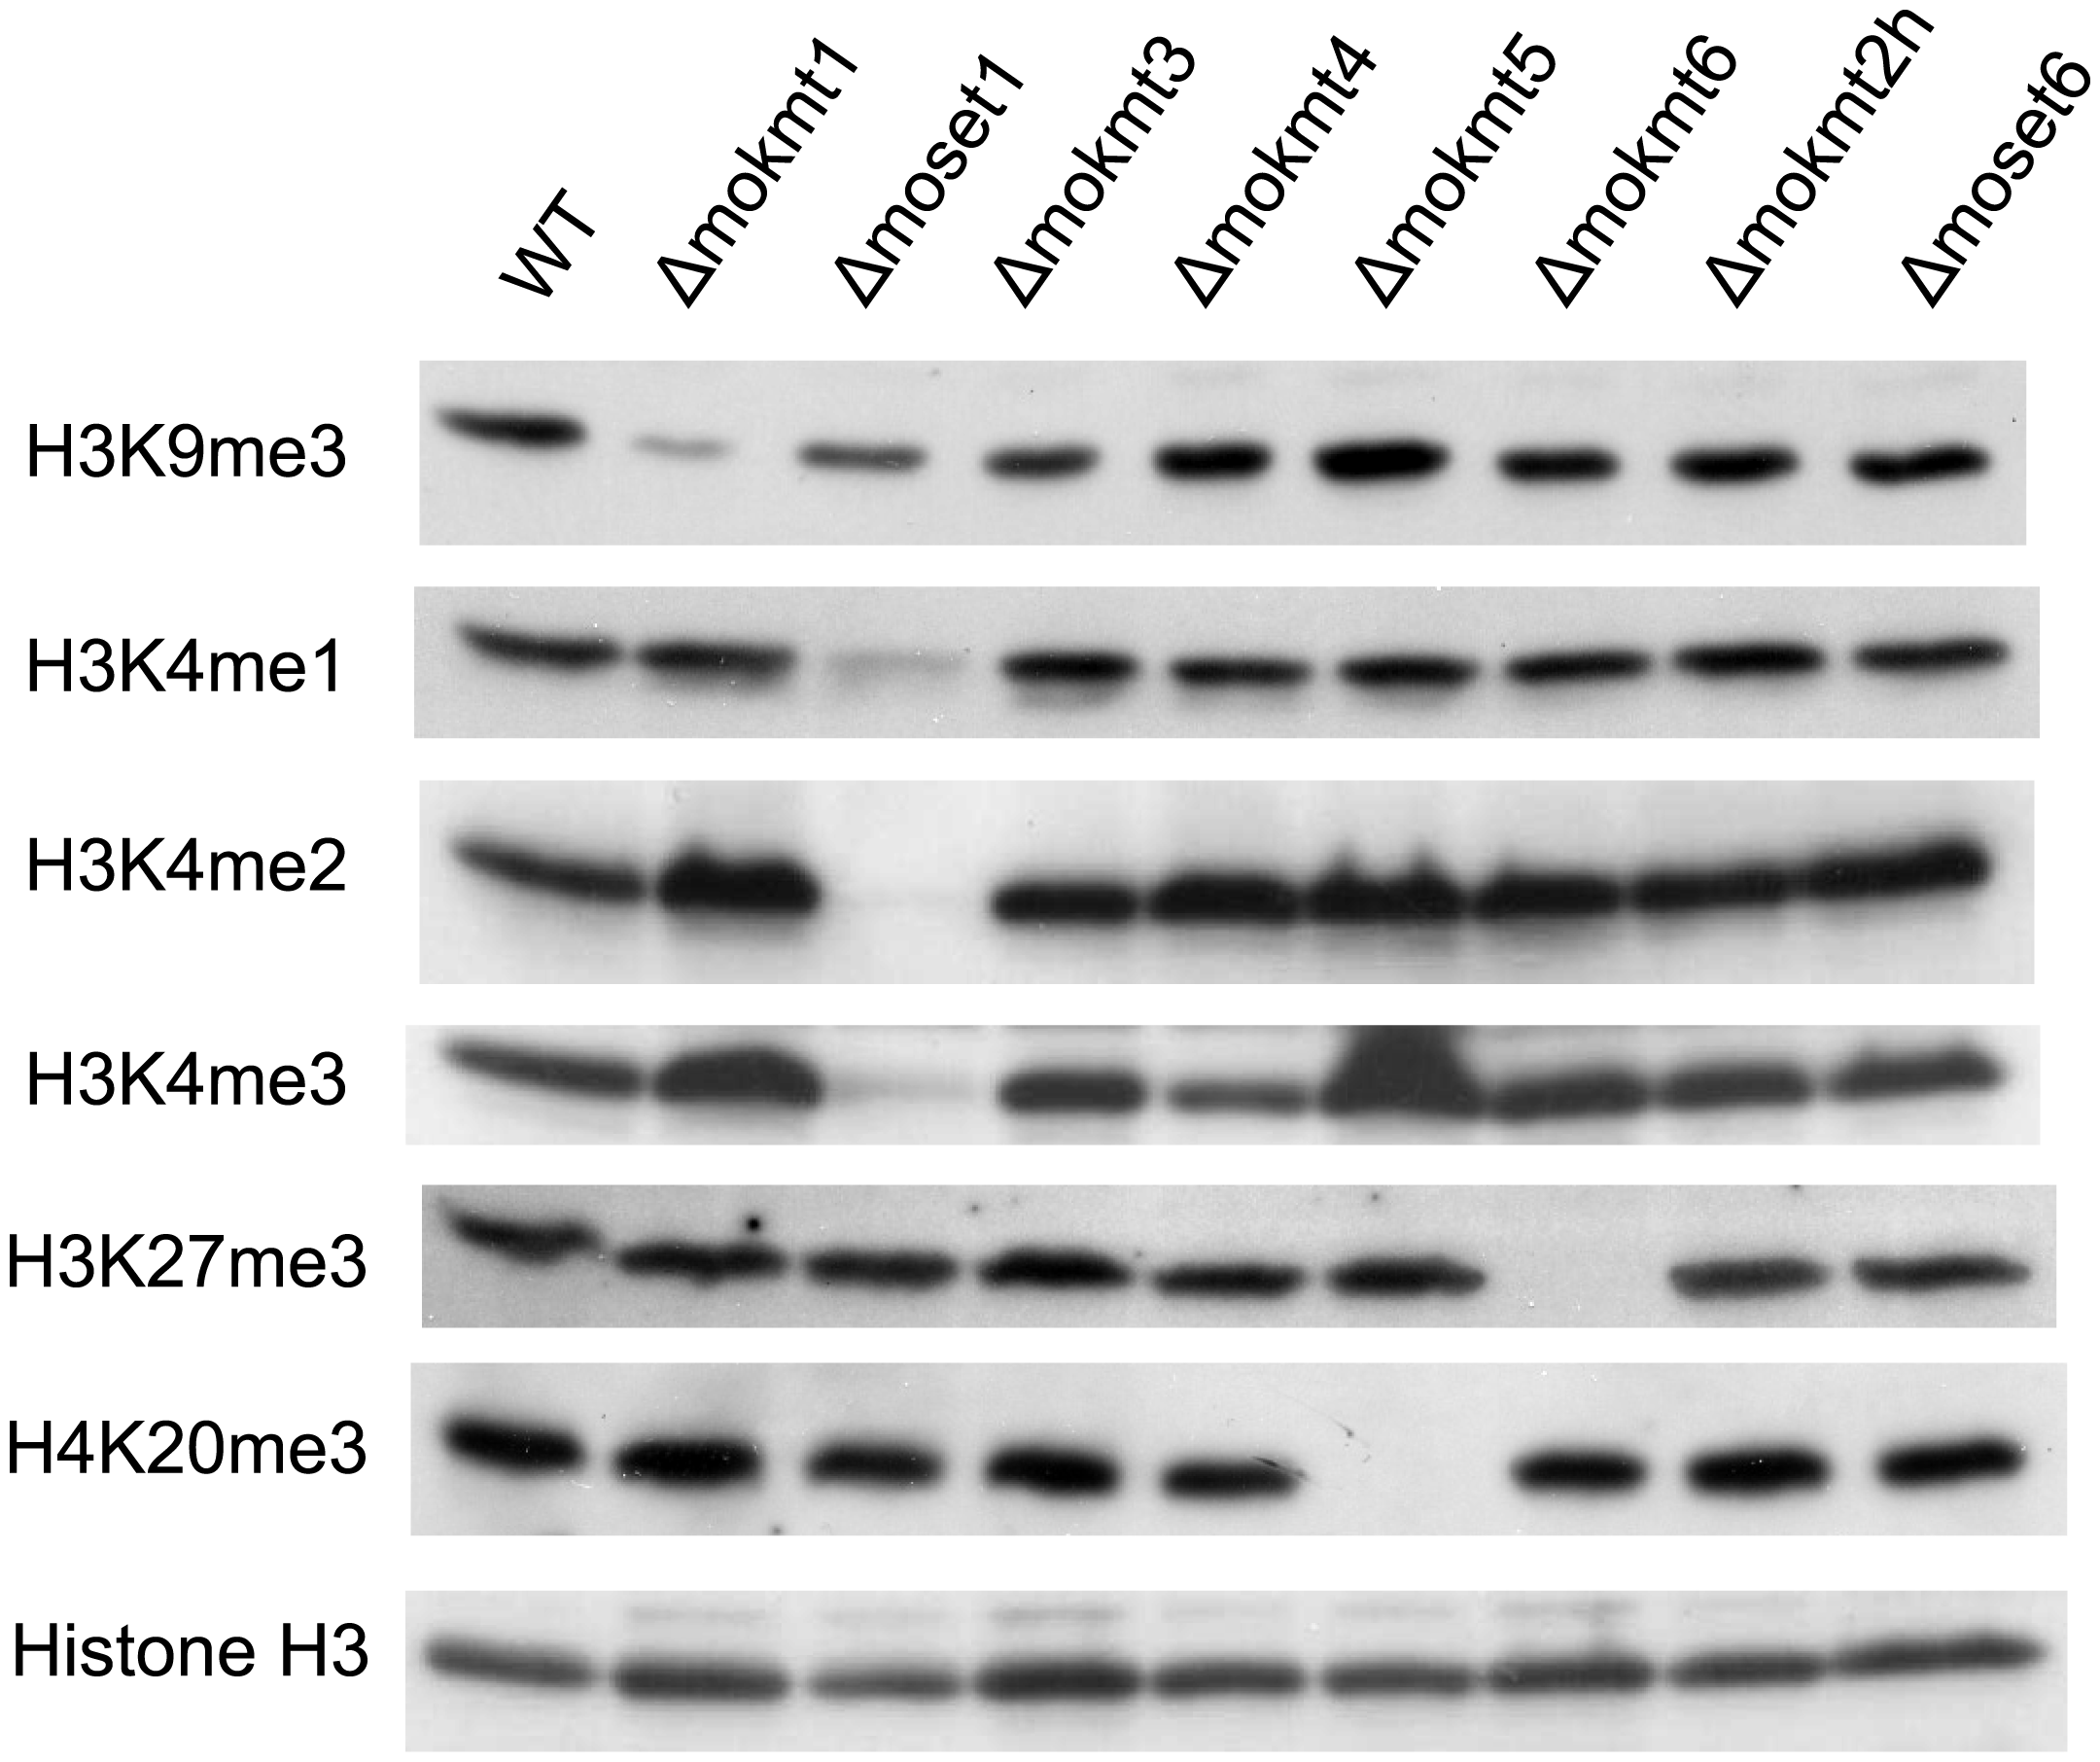 Western blotting analysis of histone modifications in KMT mutants.